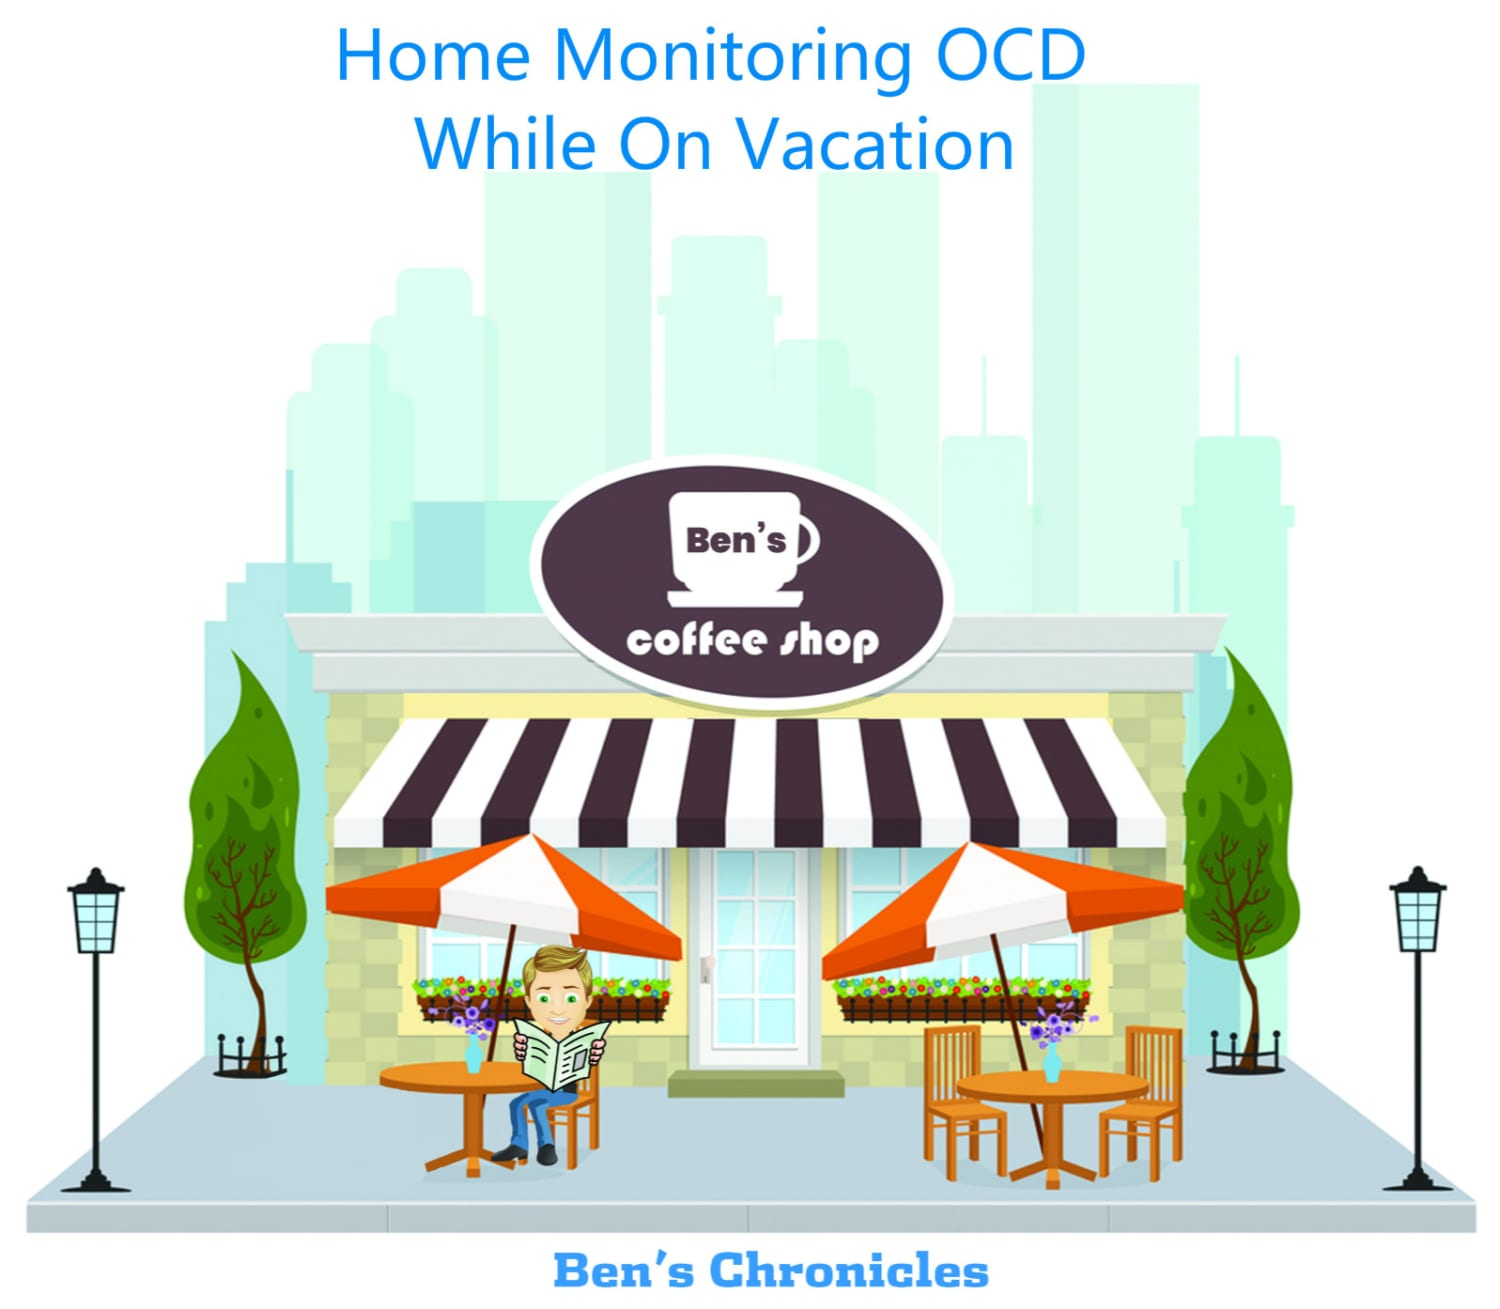 home monitoring ocd while on vacation